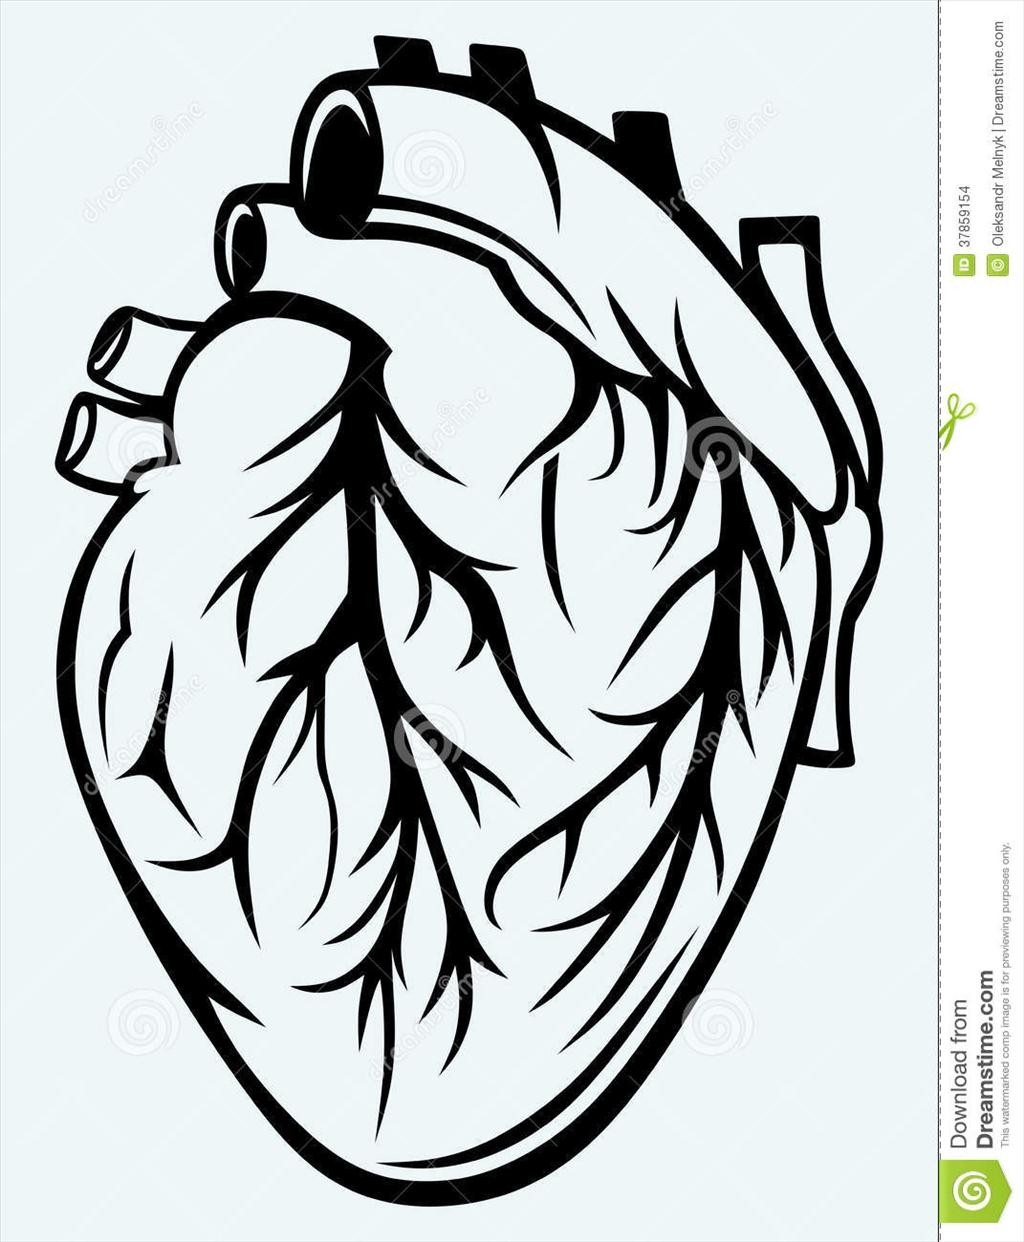 1024x1242 Human Heart Coloring Page